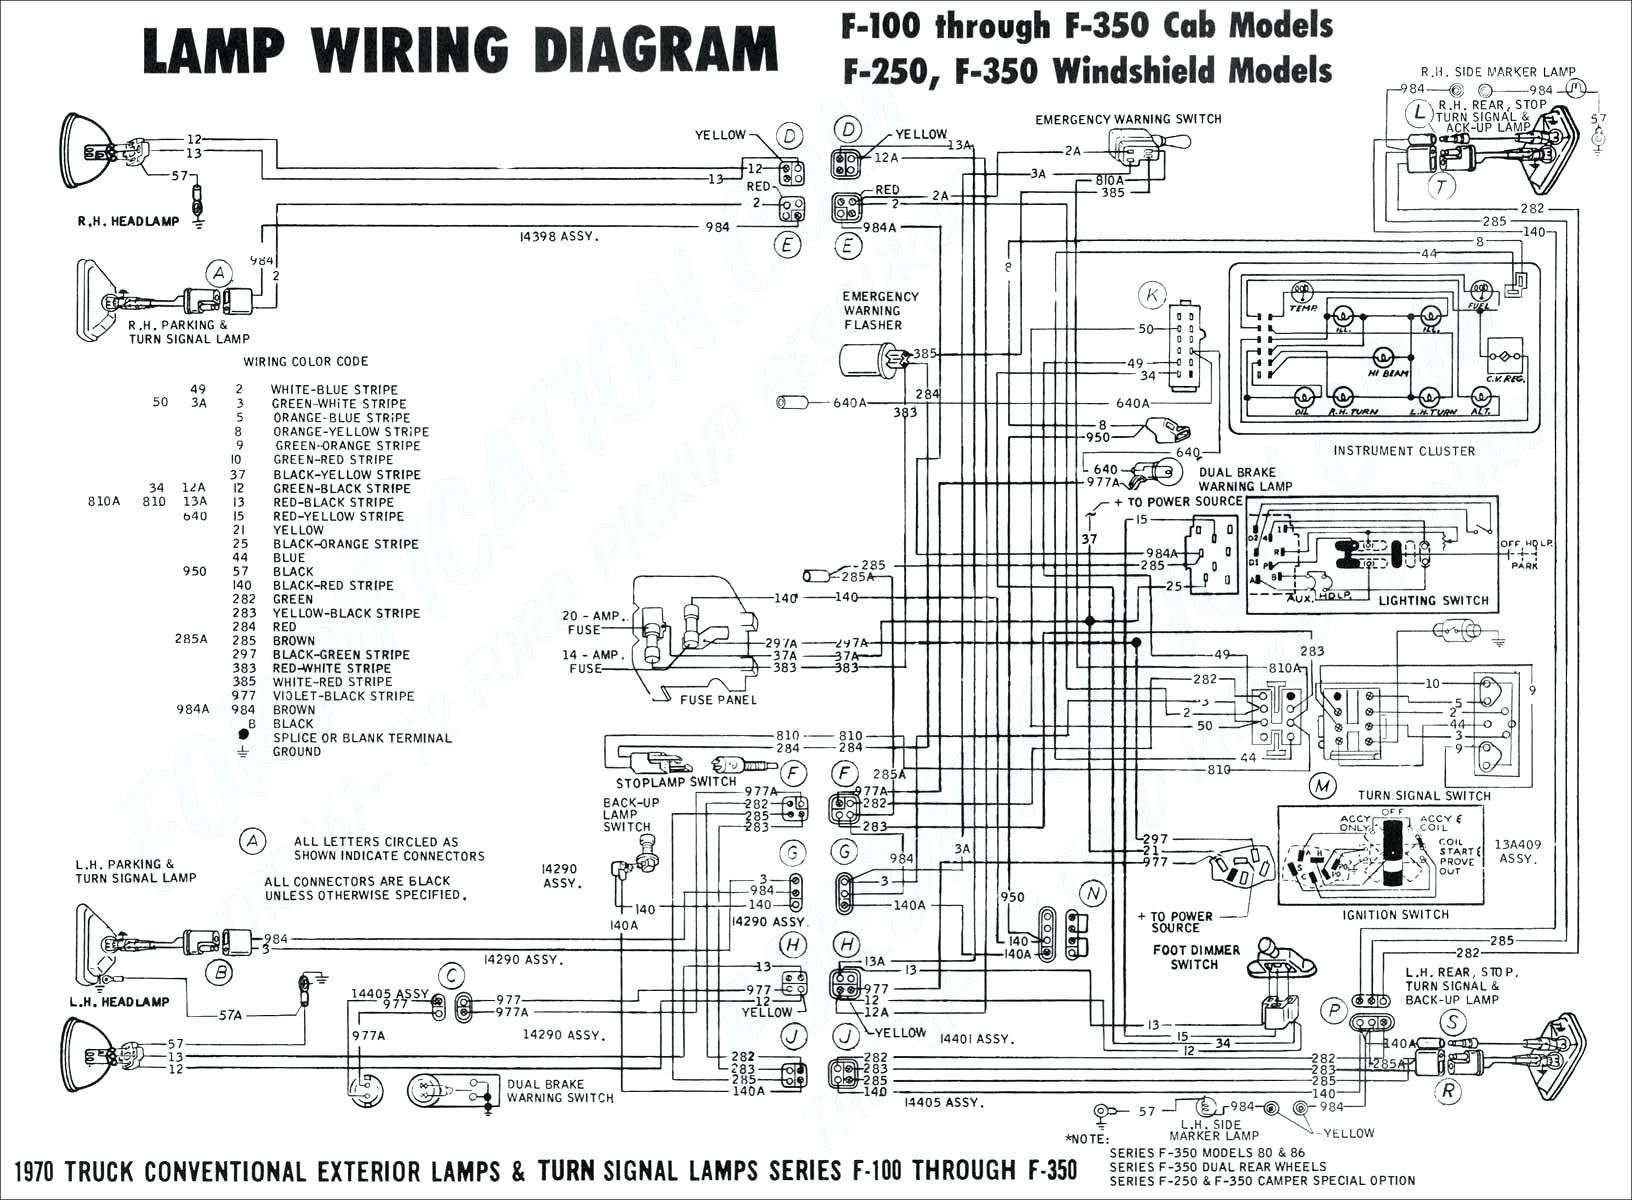 Wiring Diagram for 2000 ford F250 Taillights Pool Light Wiring Diagram